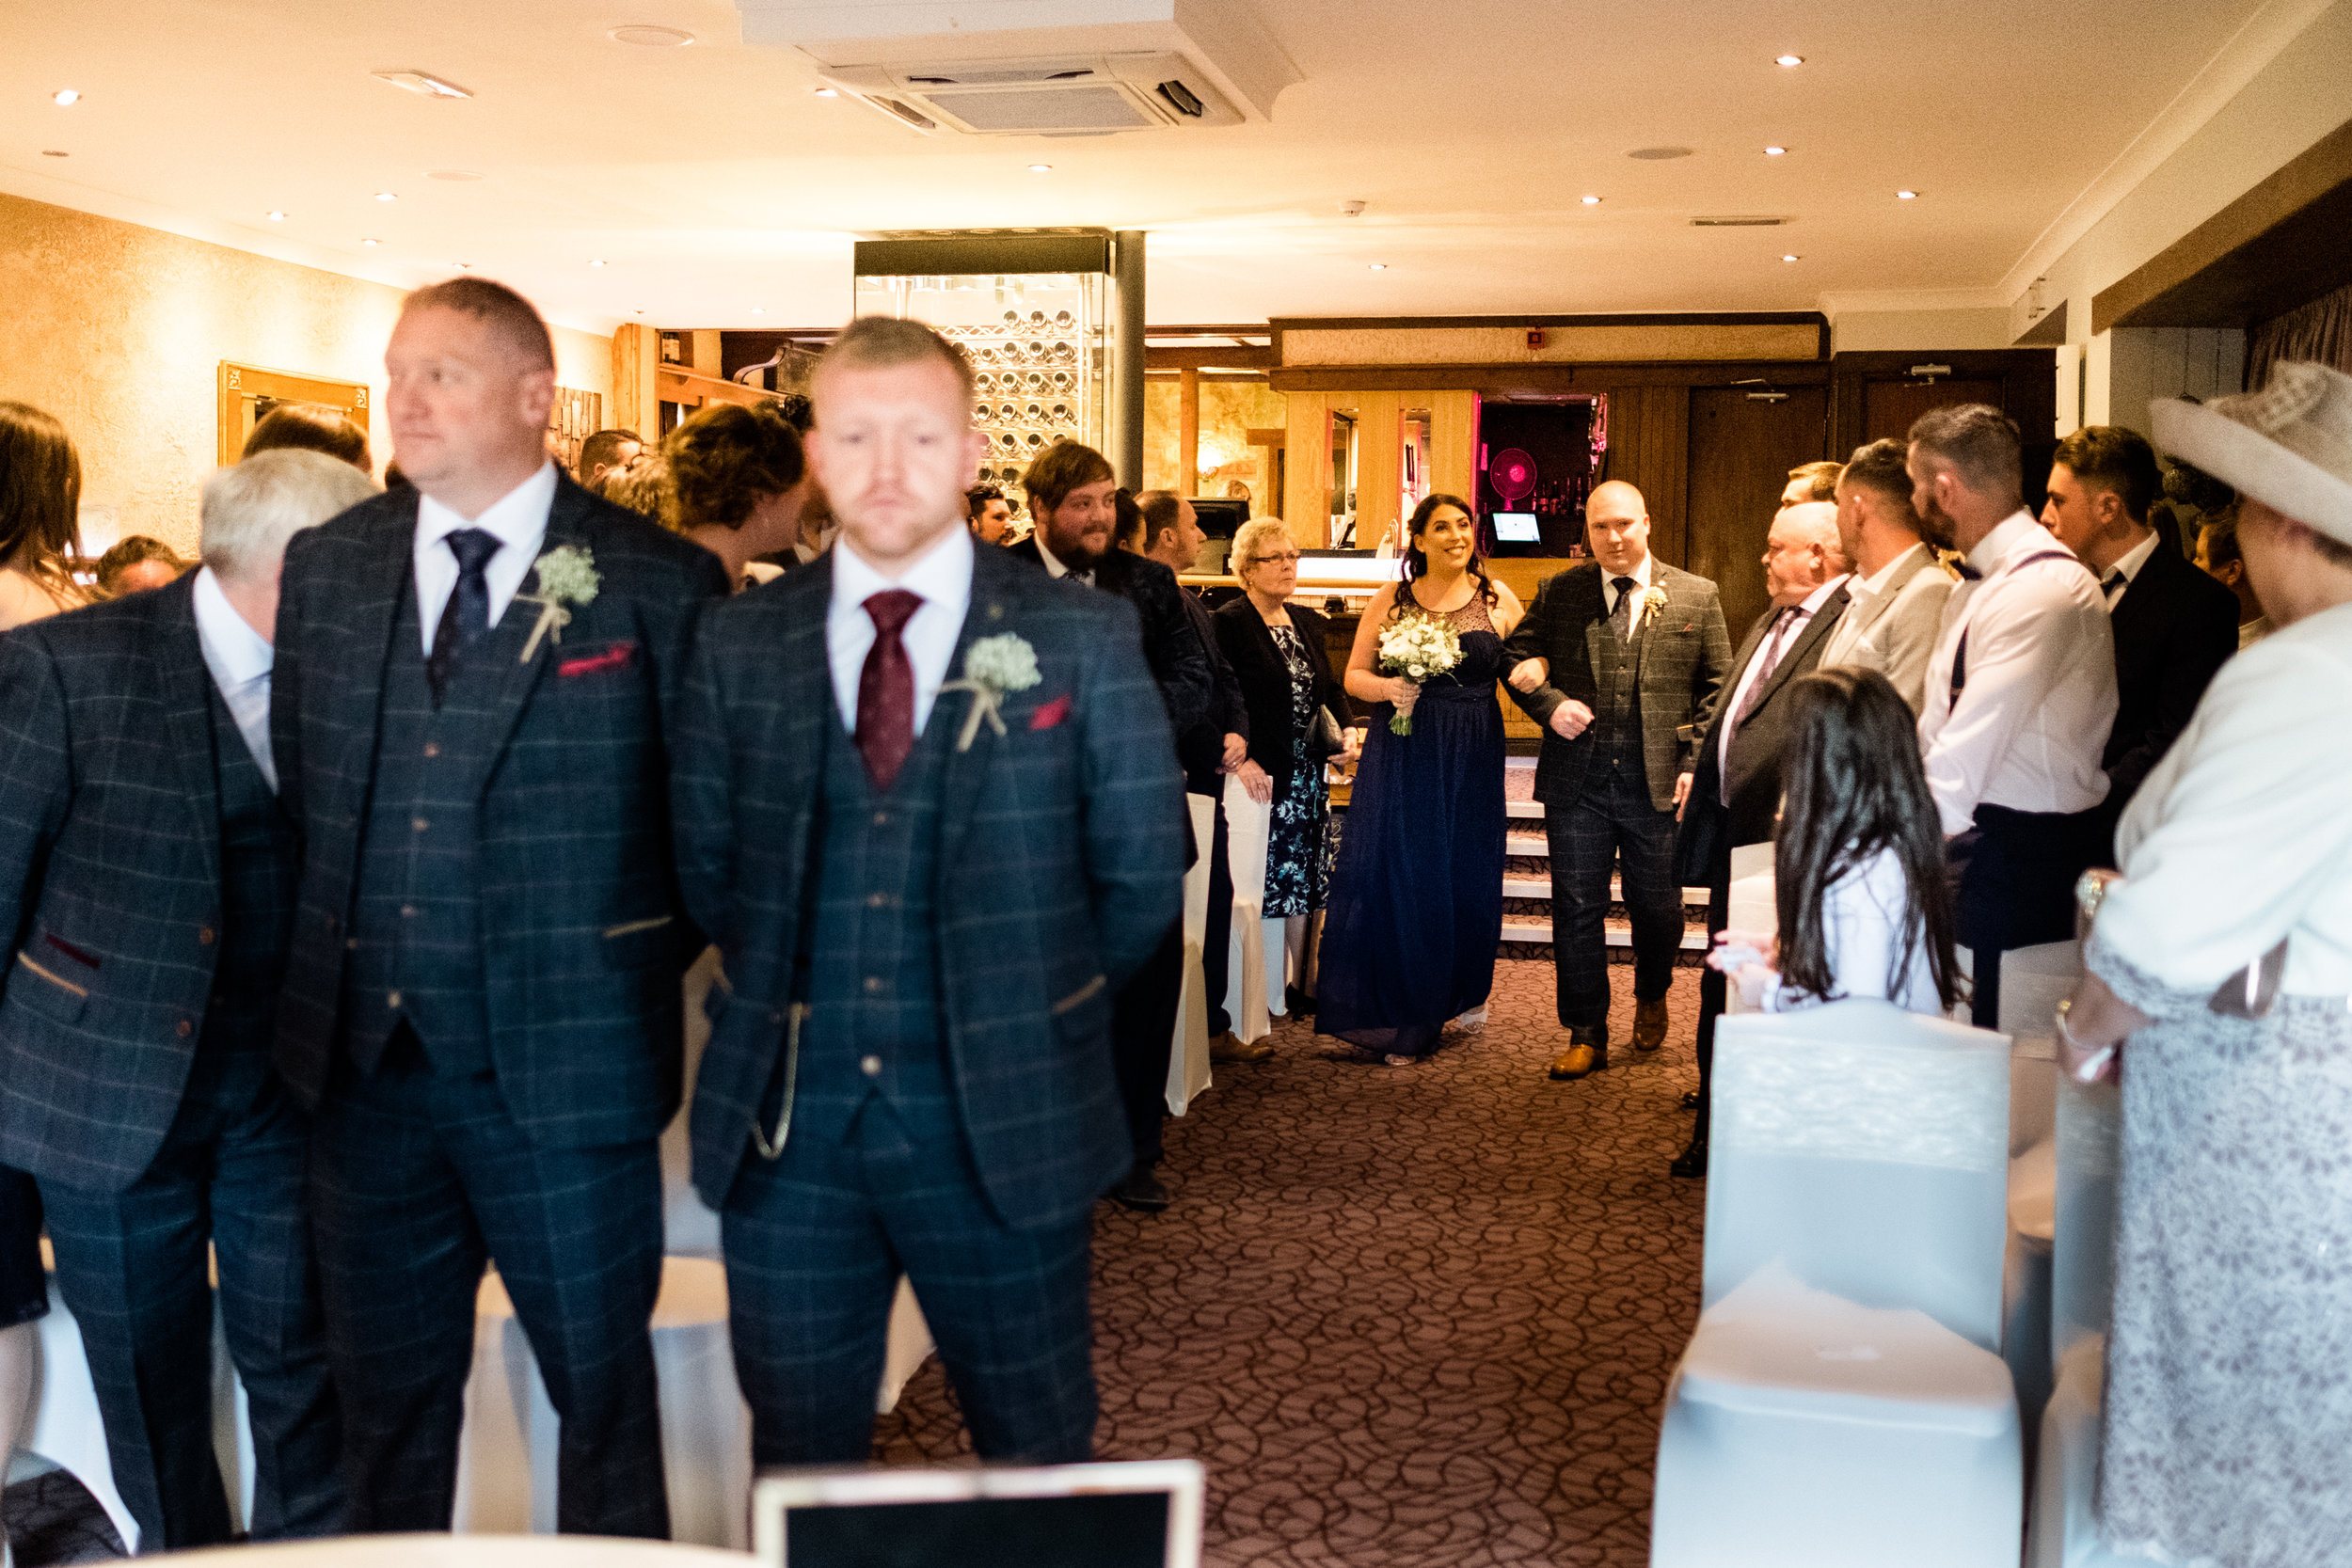 Autumn Wedding Photography at The Three Horseshoes, Blackshaw Moor, Staffordshire Moorlands - Jenny Harper-20.jpg